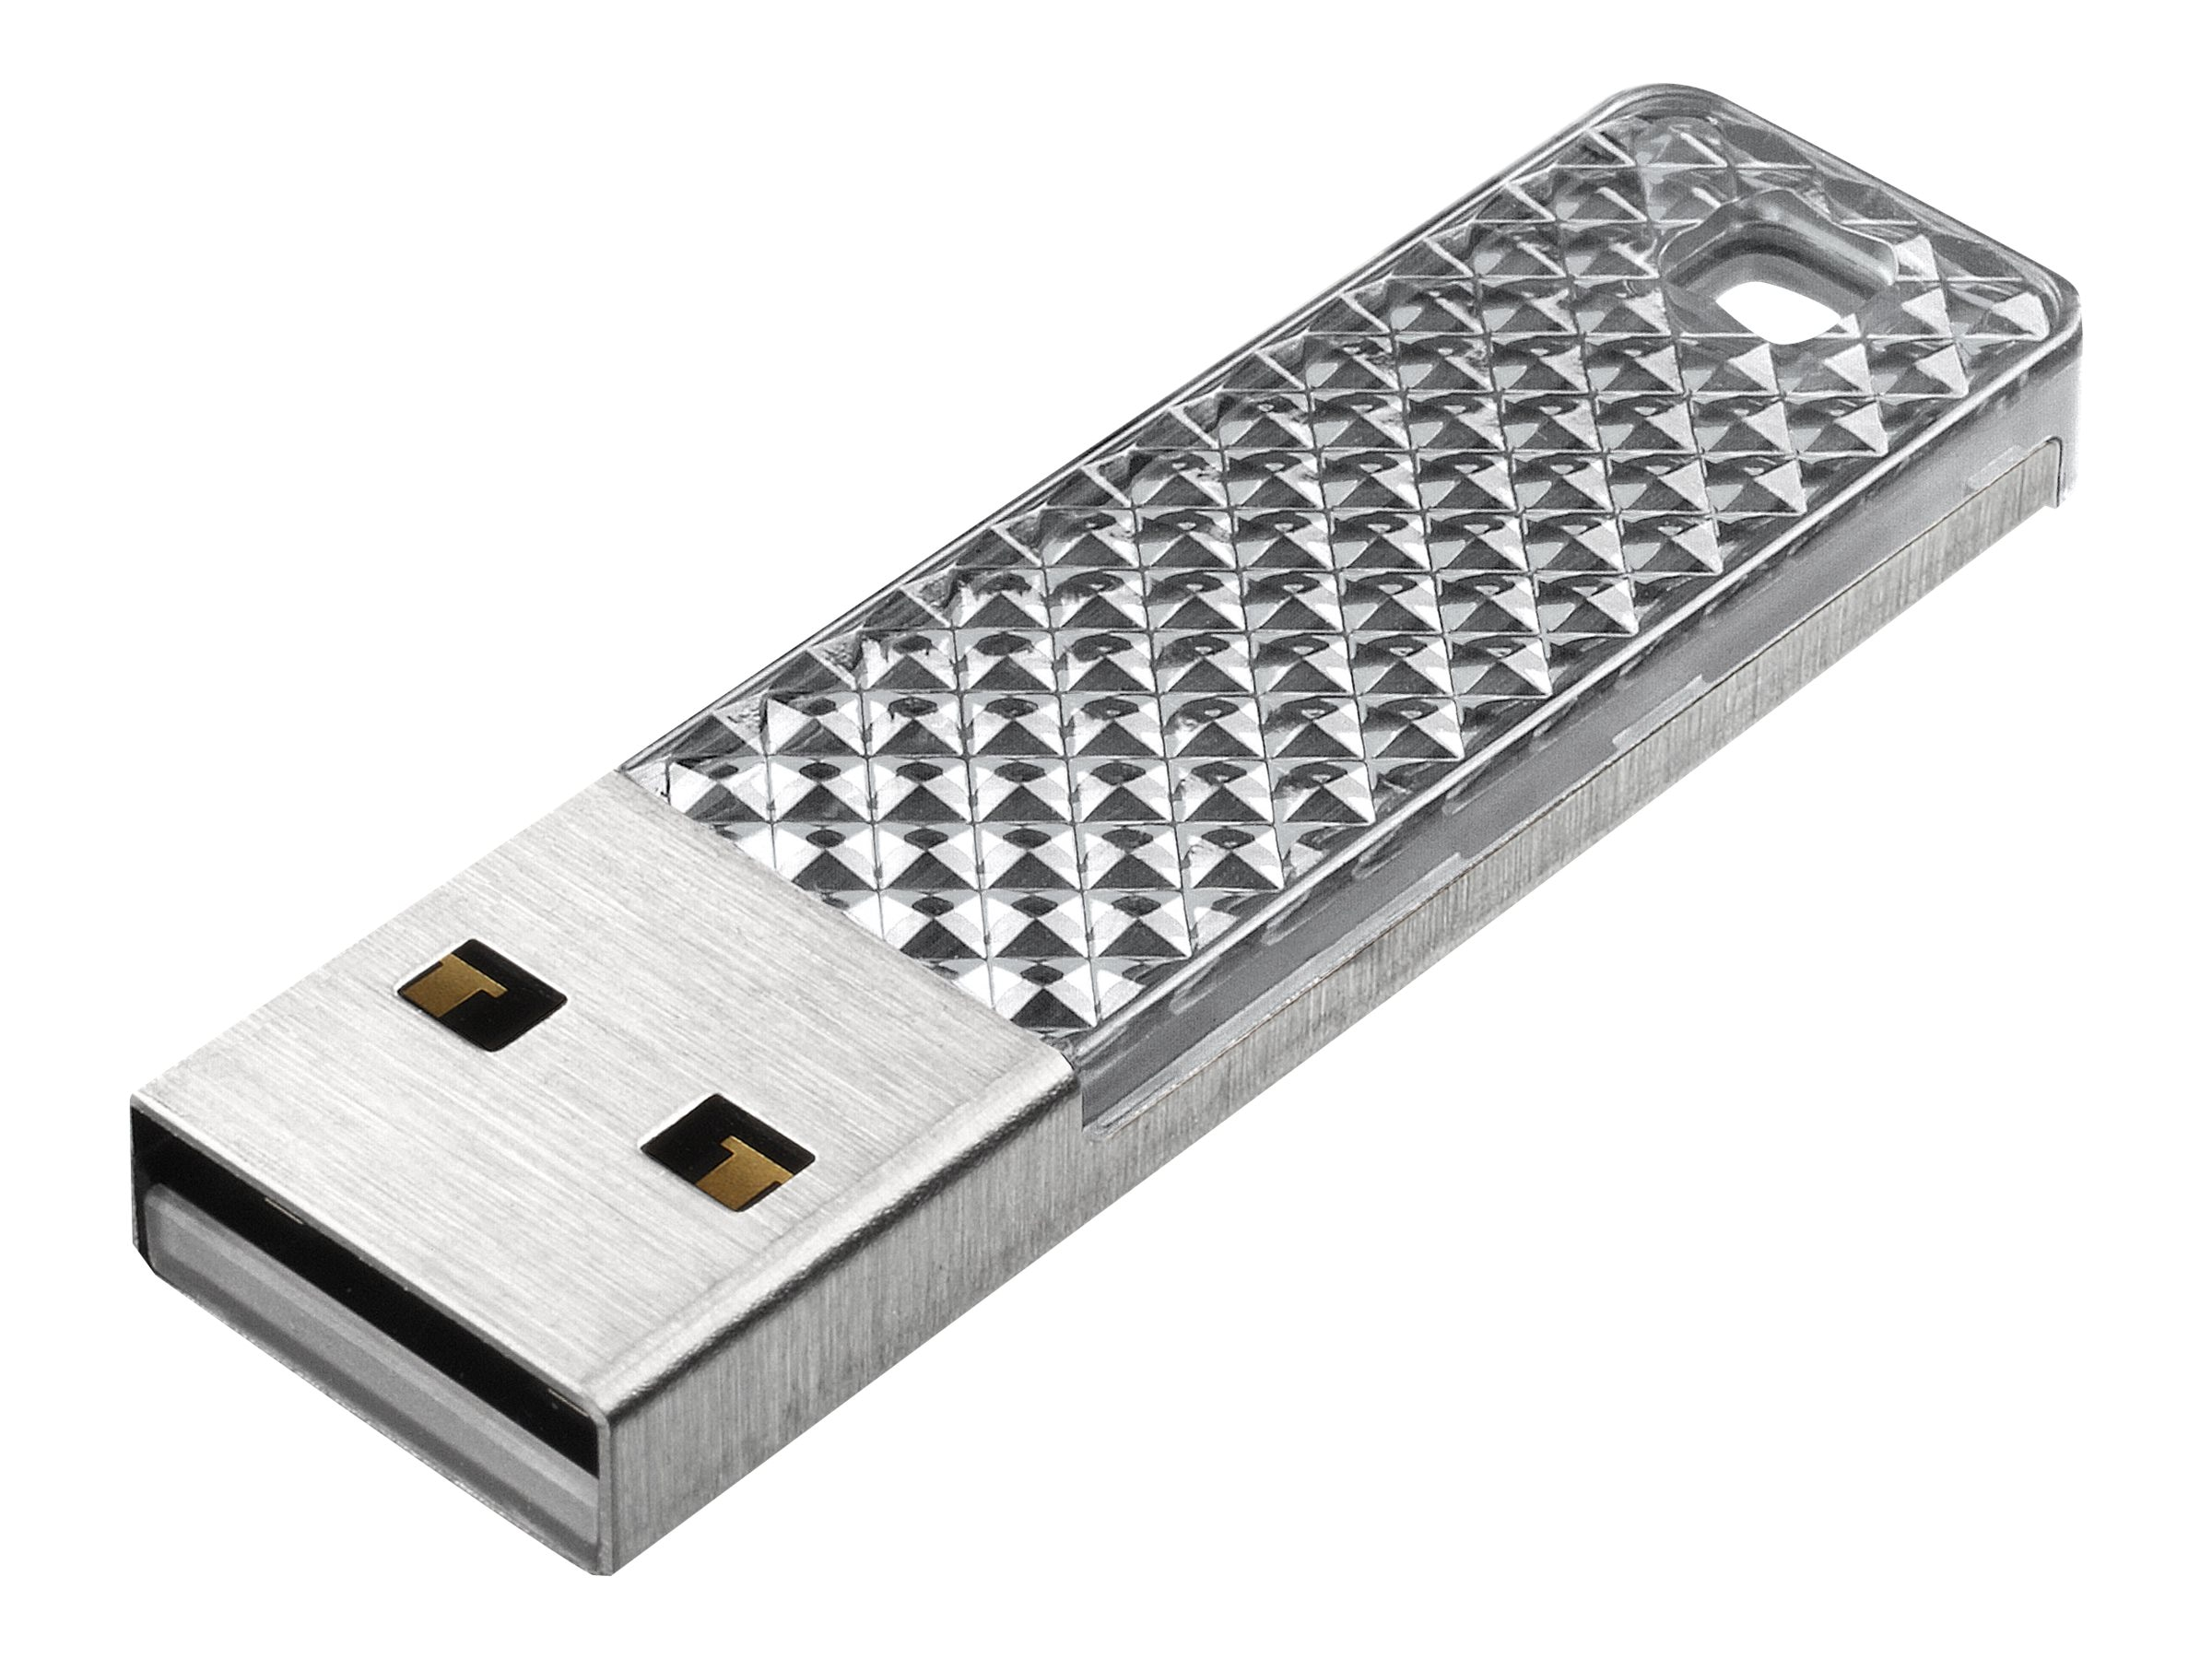 SanDisk 32GB Cruzer Facet USB Flash Drive, Silver, SDCZ55-032G-A46S